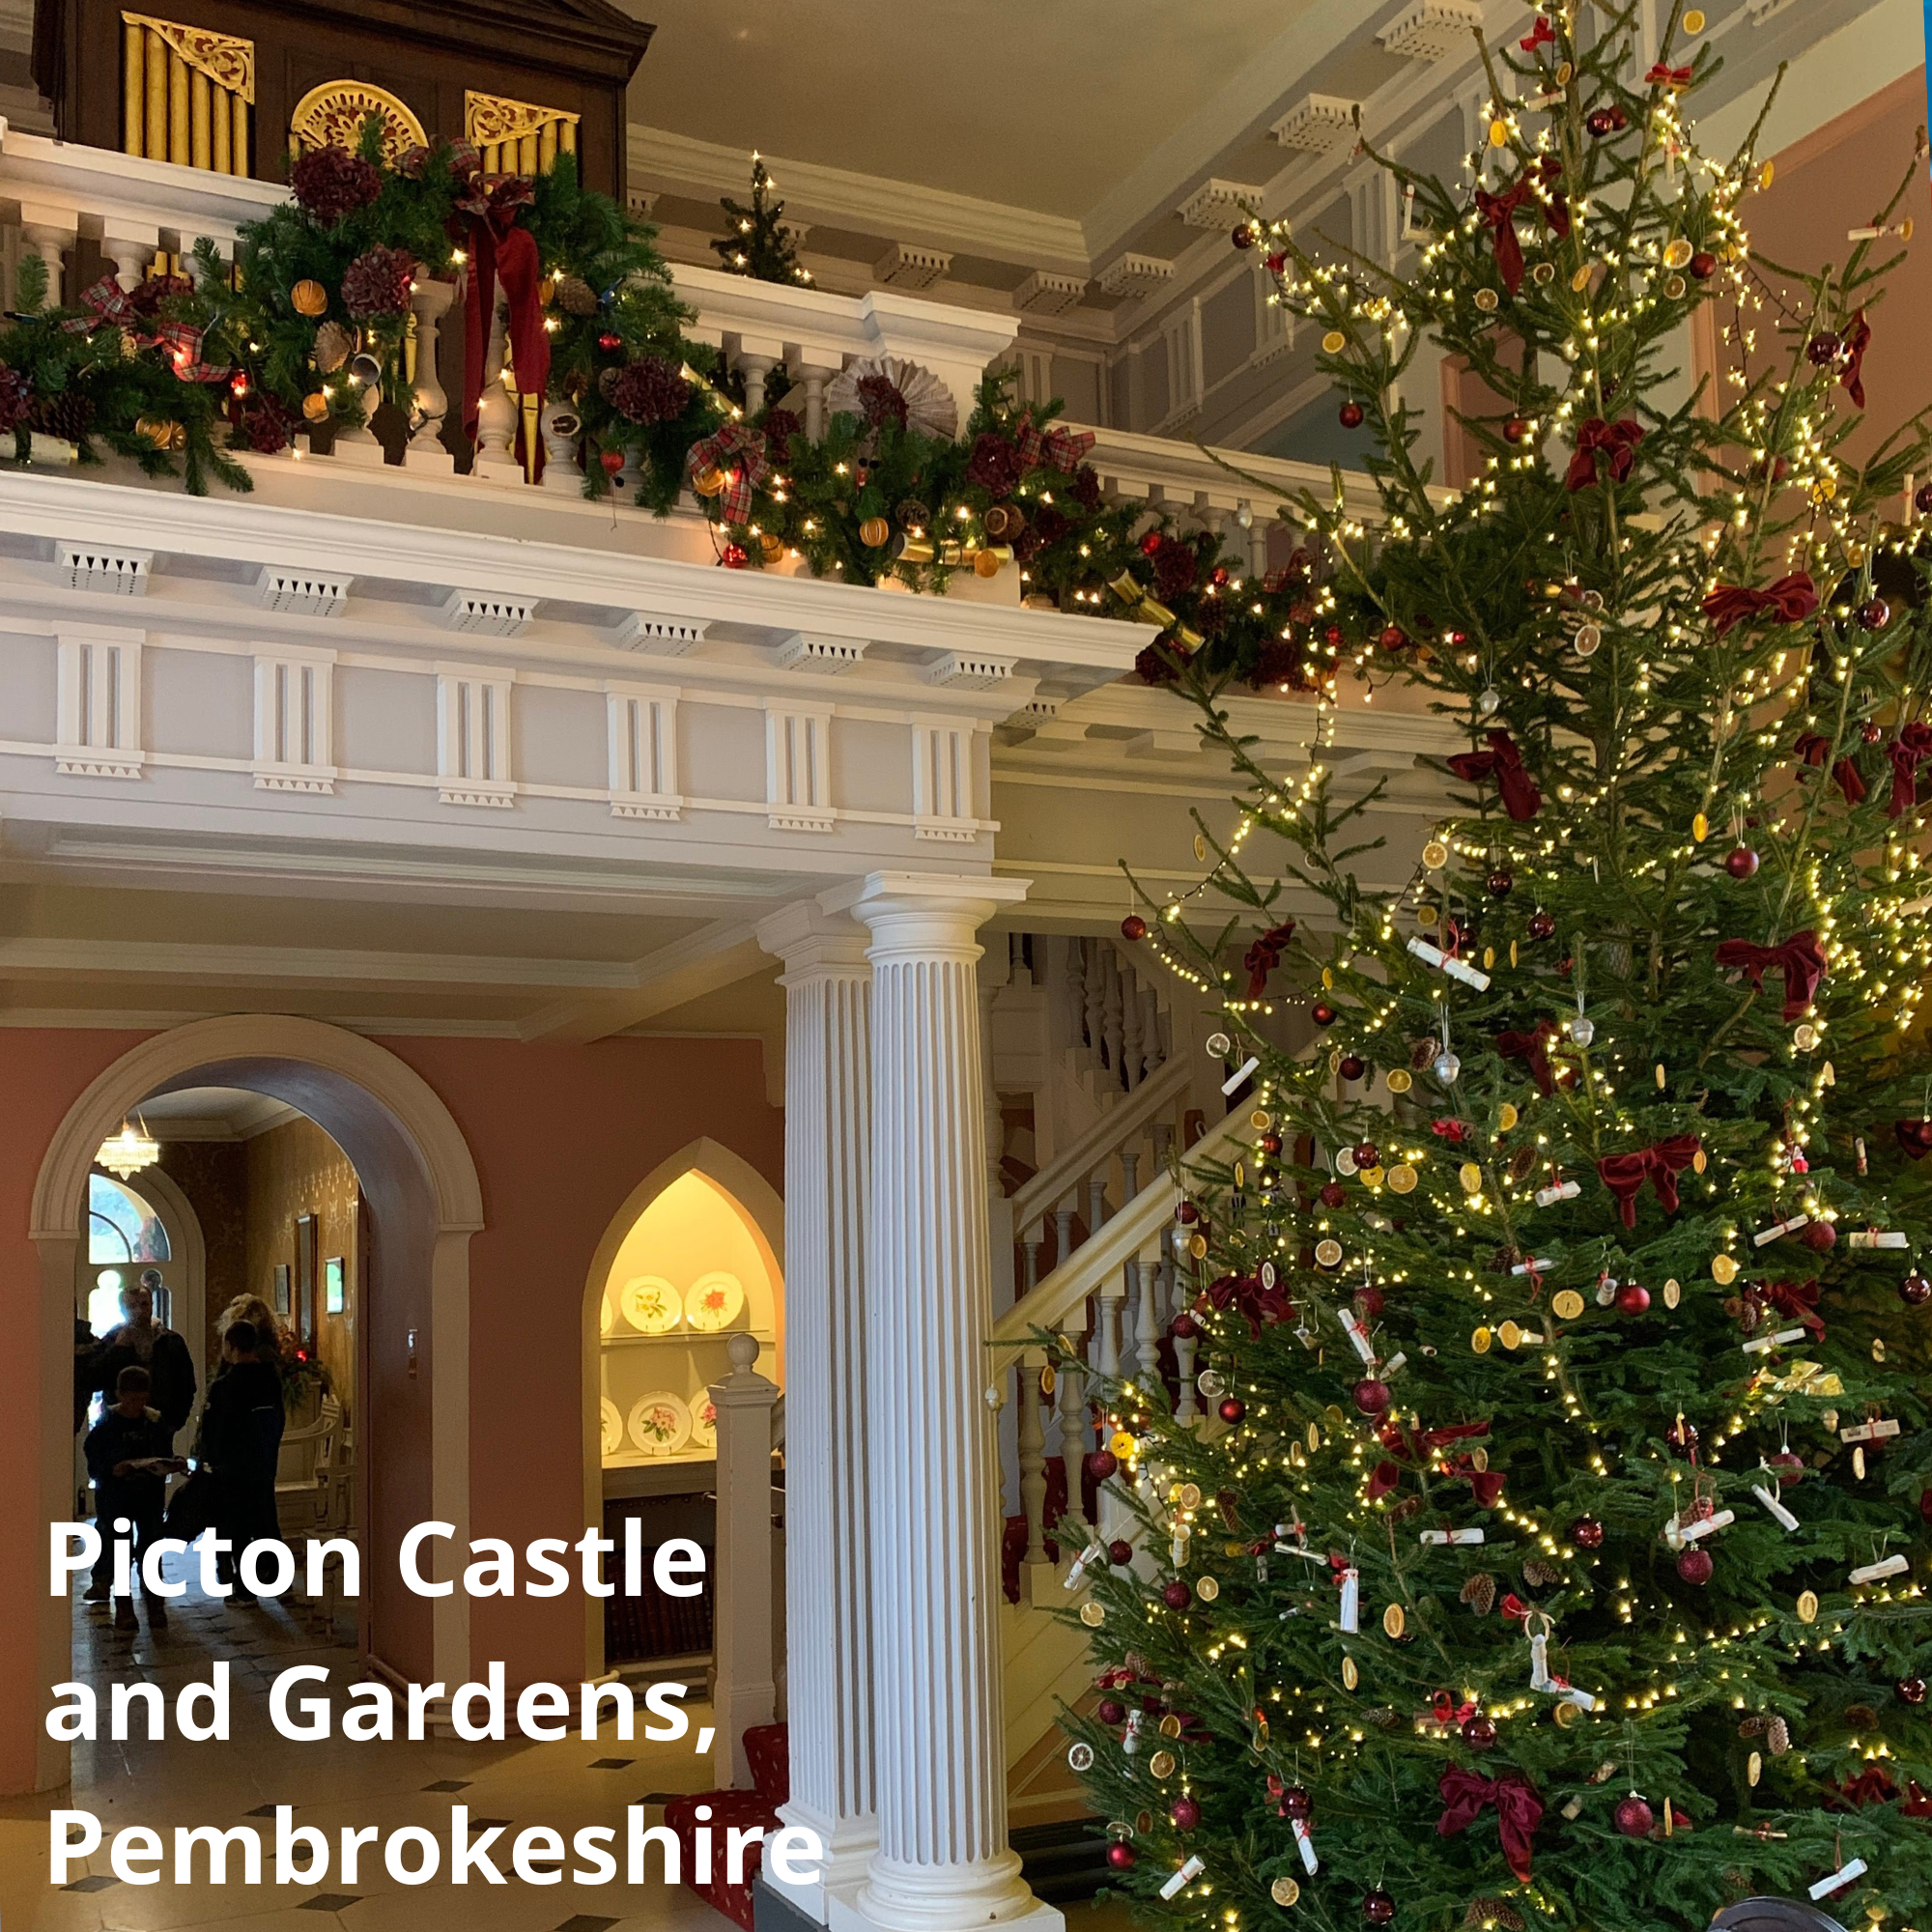 Picton Castle and Gardens, Pembrokeshire